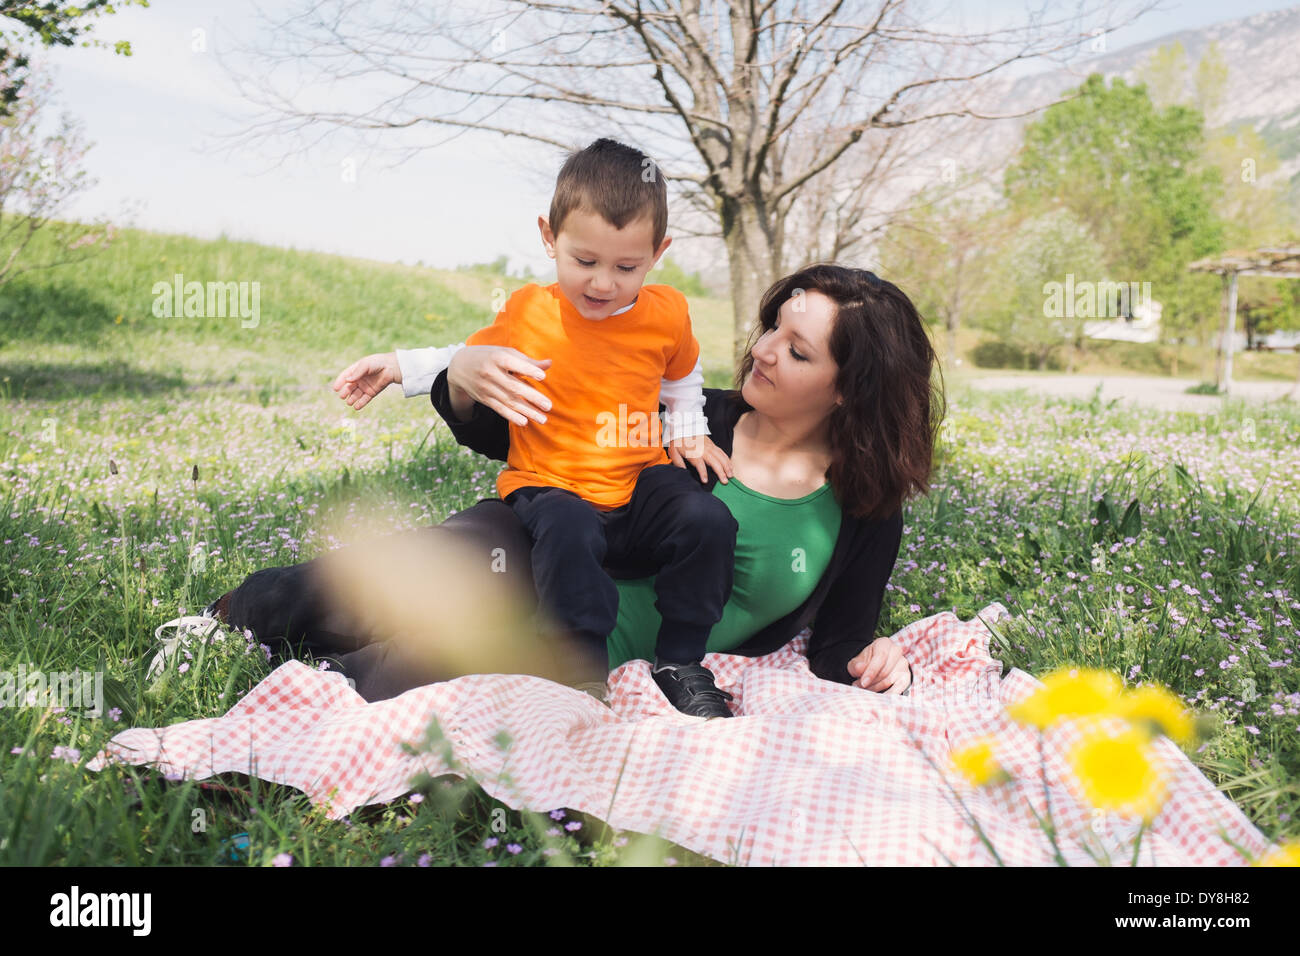 Mother and son on a blanket in nature - Stock Image